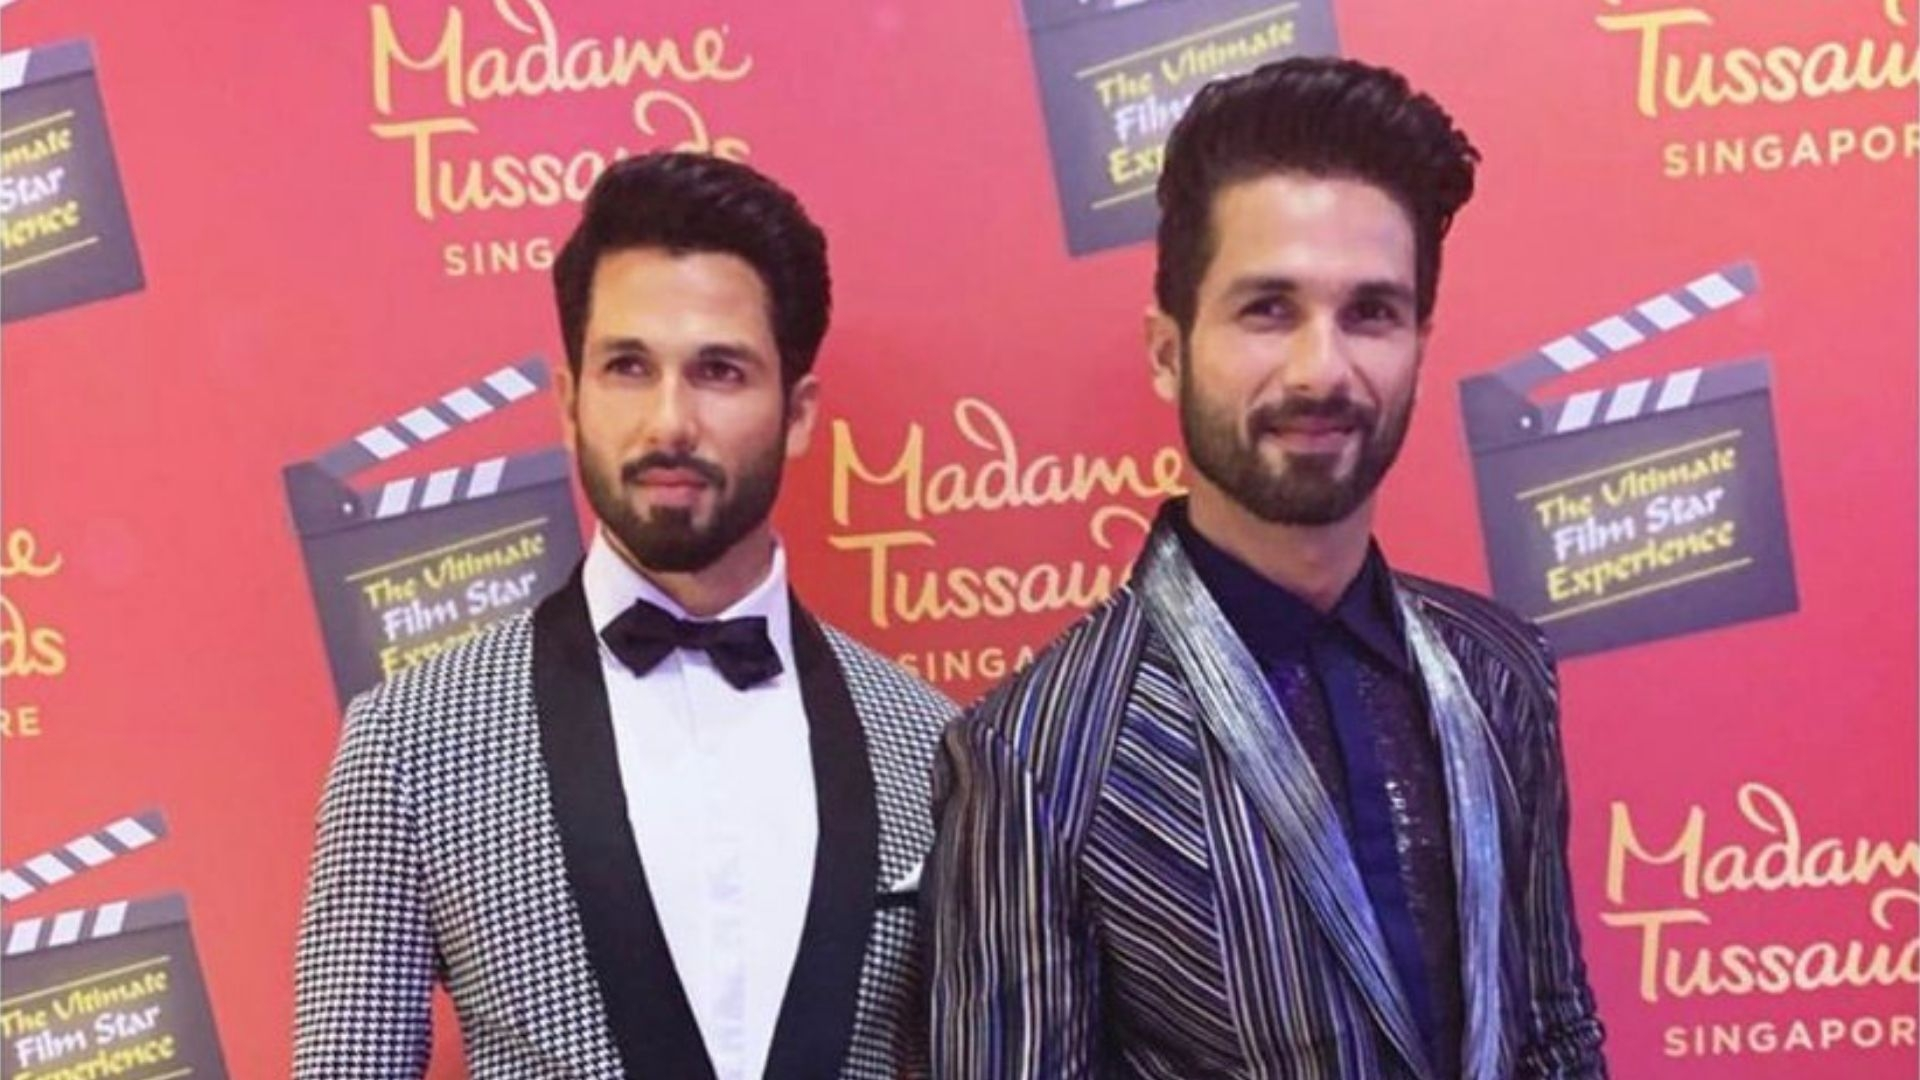 Shahid Hangs out With His Madame Tussauds Statue in Singapore